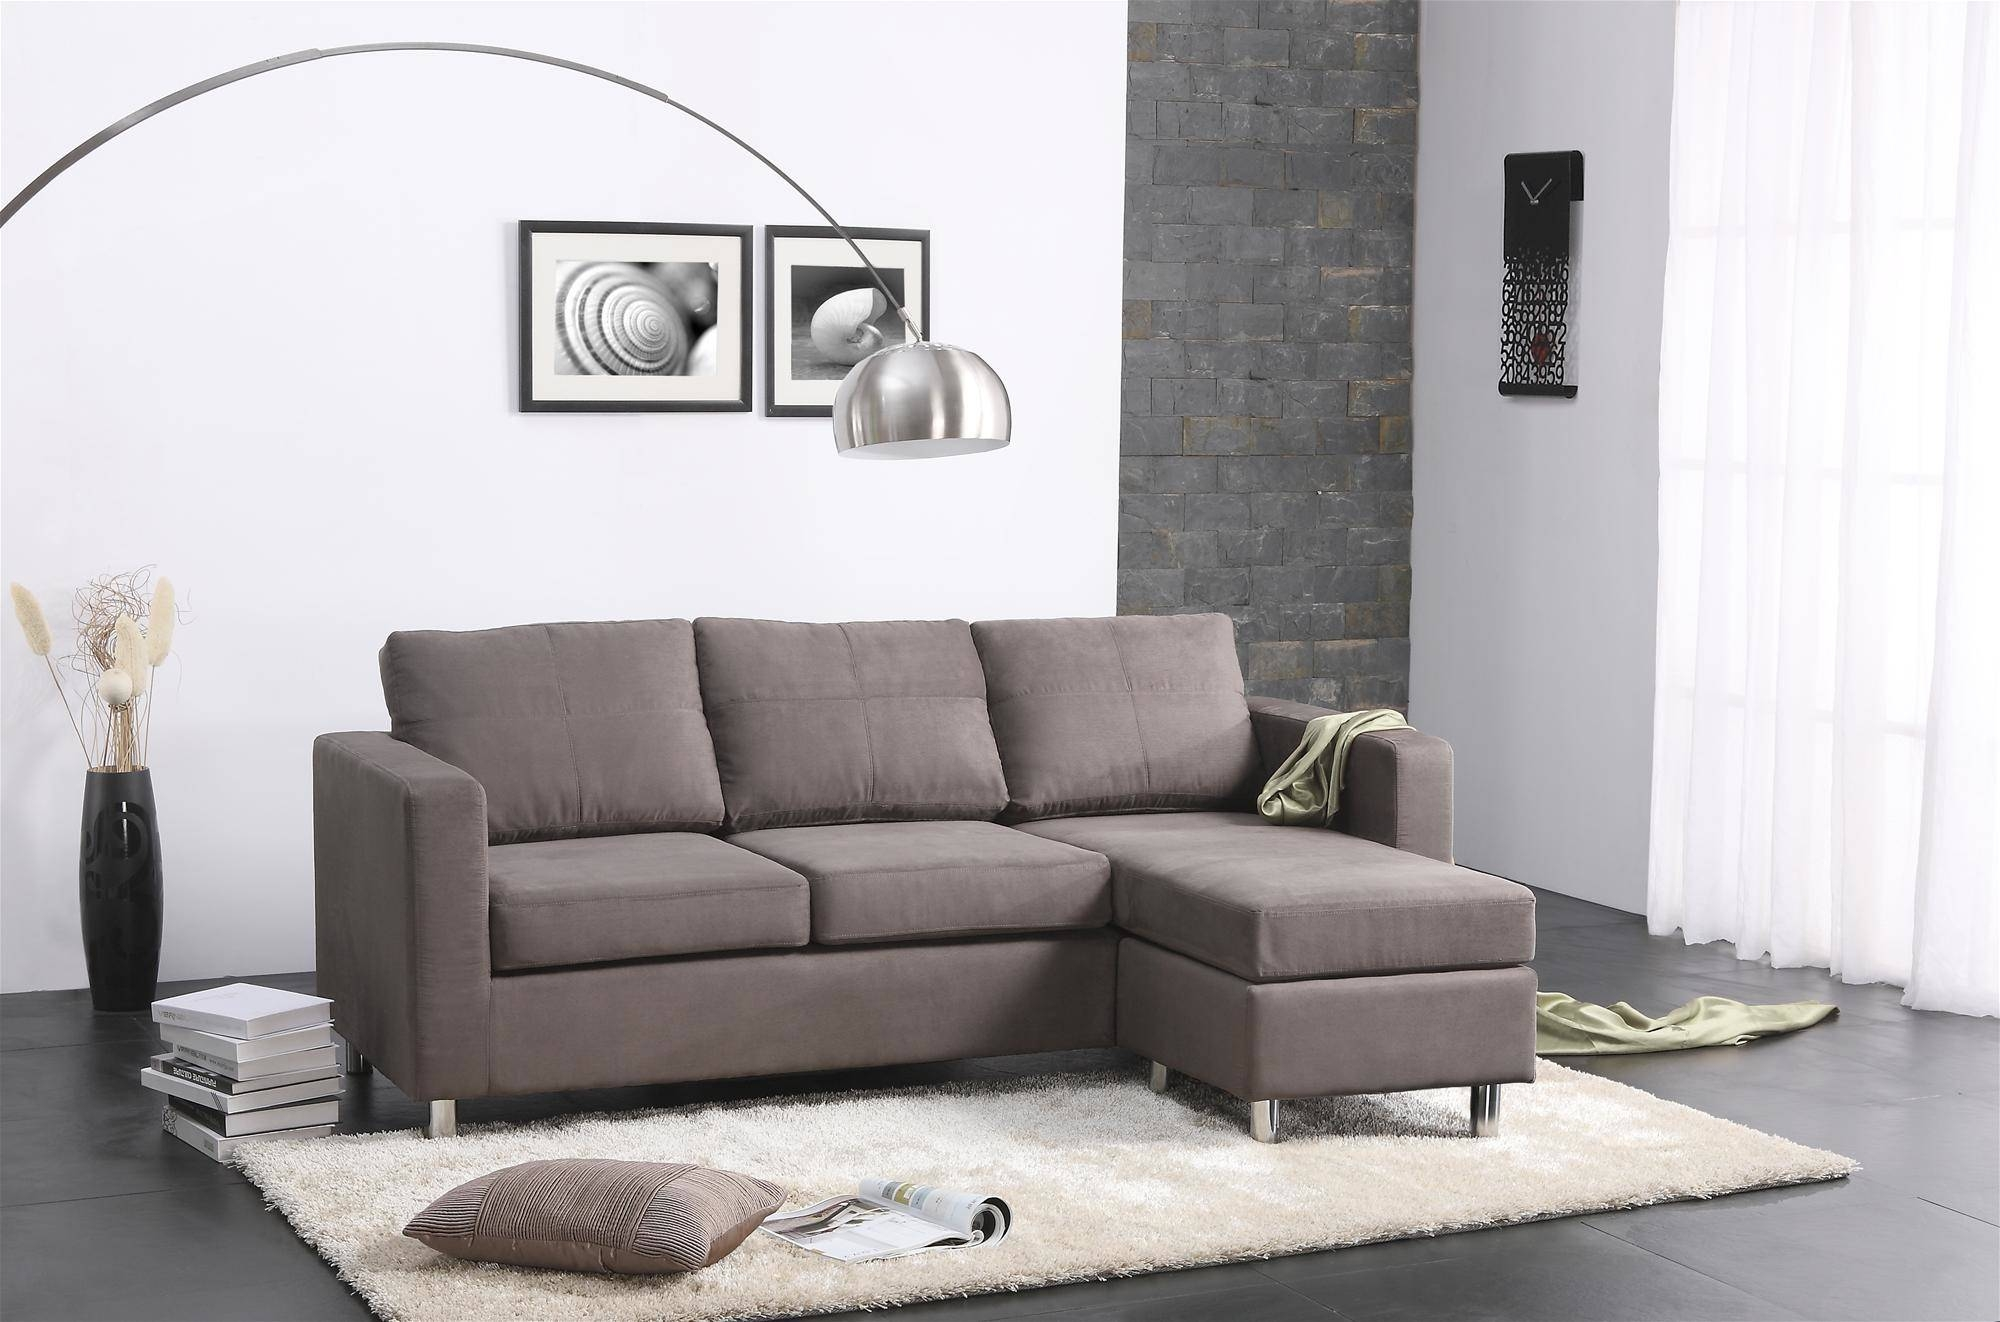 Furniture & Sofa: Small Spaces Configurable Sectional Sofa Inside Small Spaces Configurable Sectional Sofas (View 14 of 15)